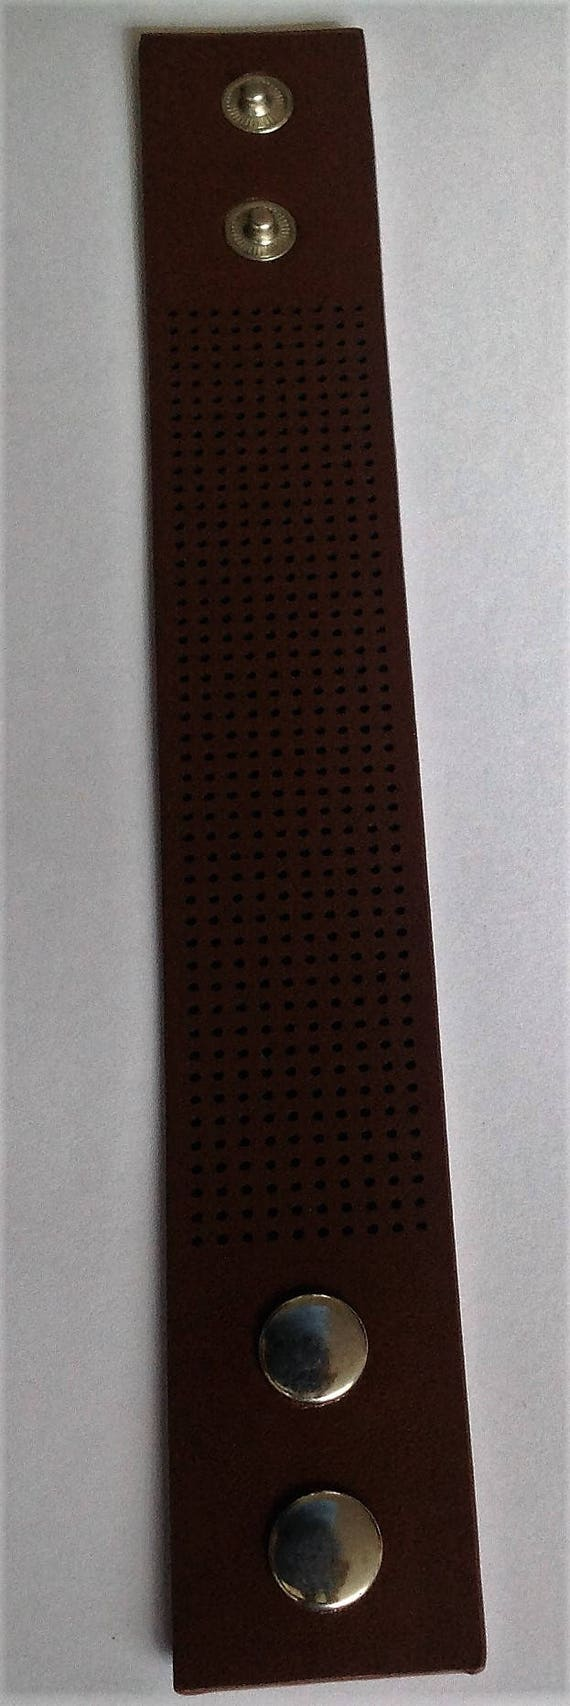 Bracelet Cuff in Brown for sewing using embroidery threads or beads